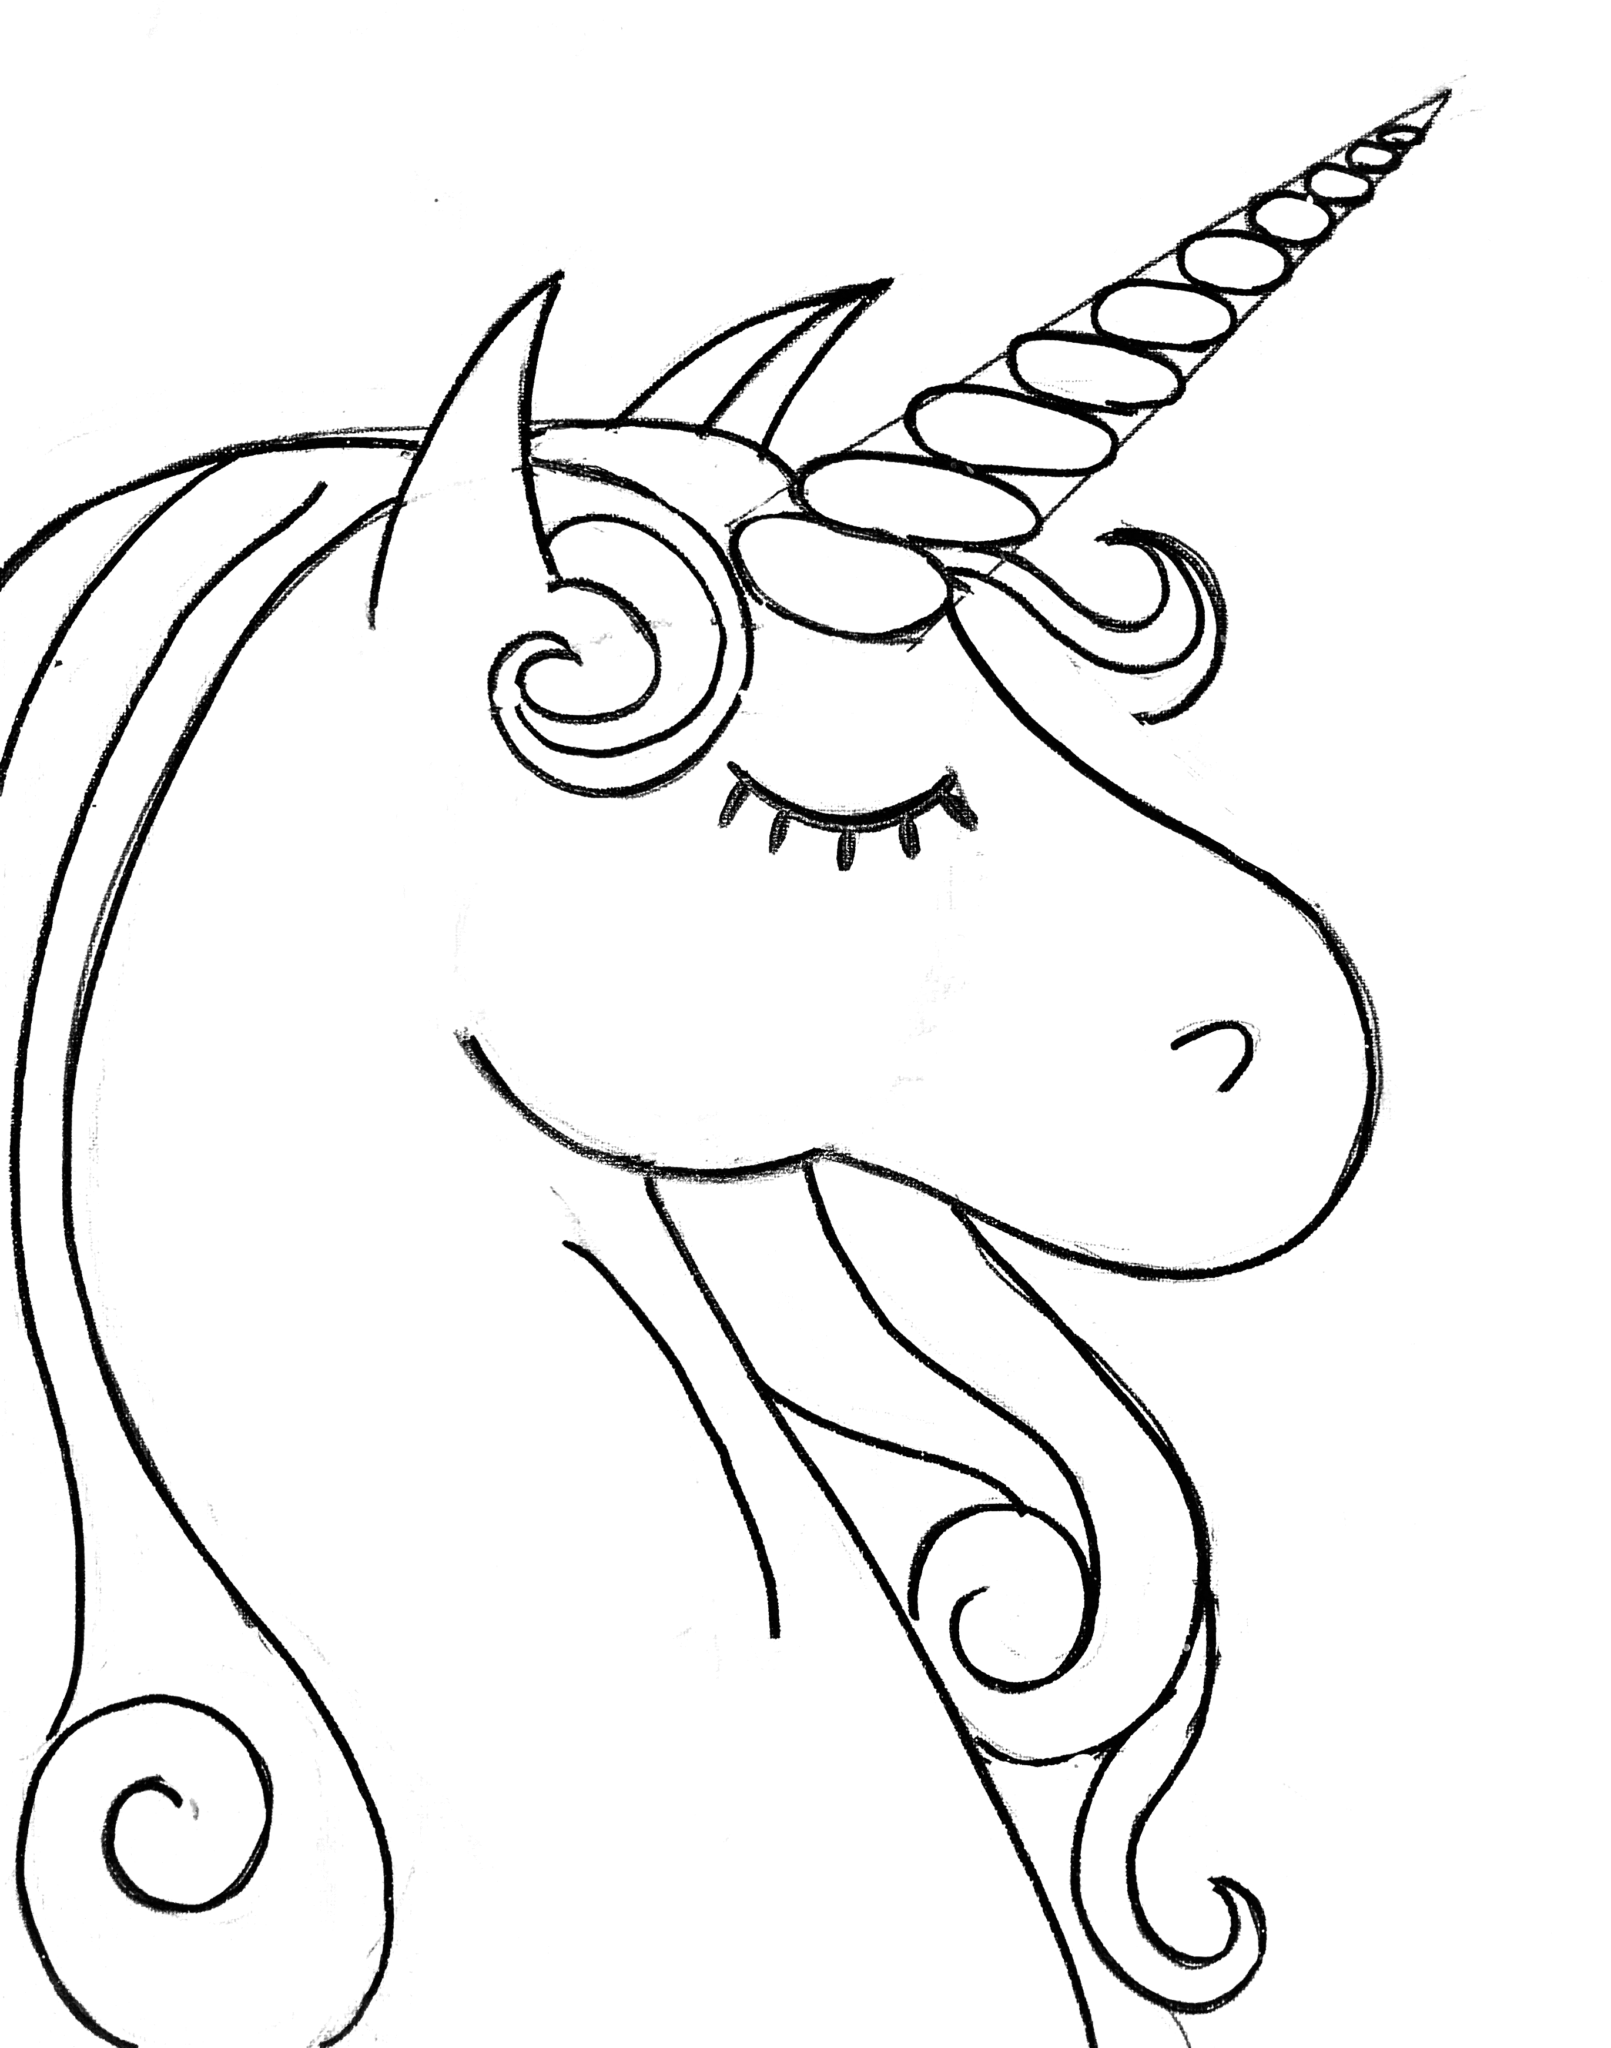 Unicorn Template Printable